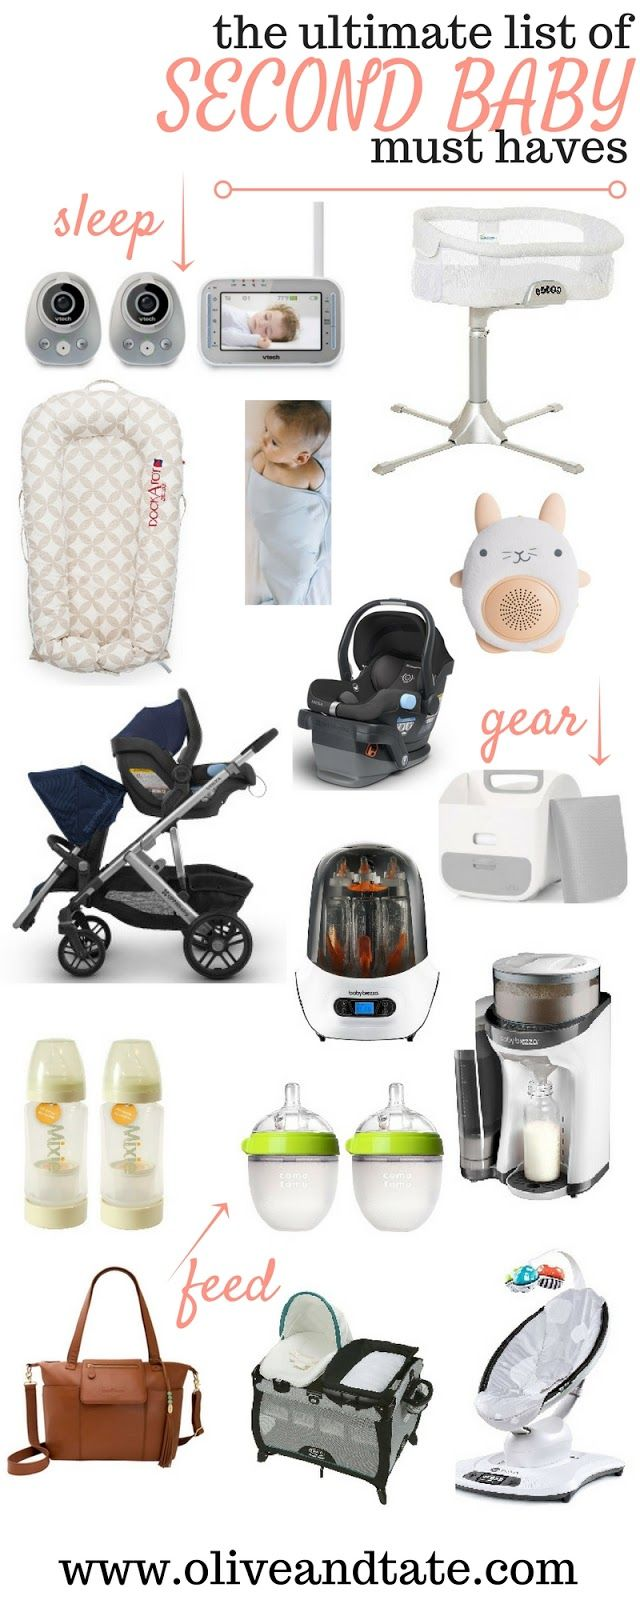 The Ultimate List of Second Baby Must-Haves